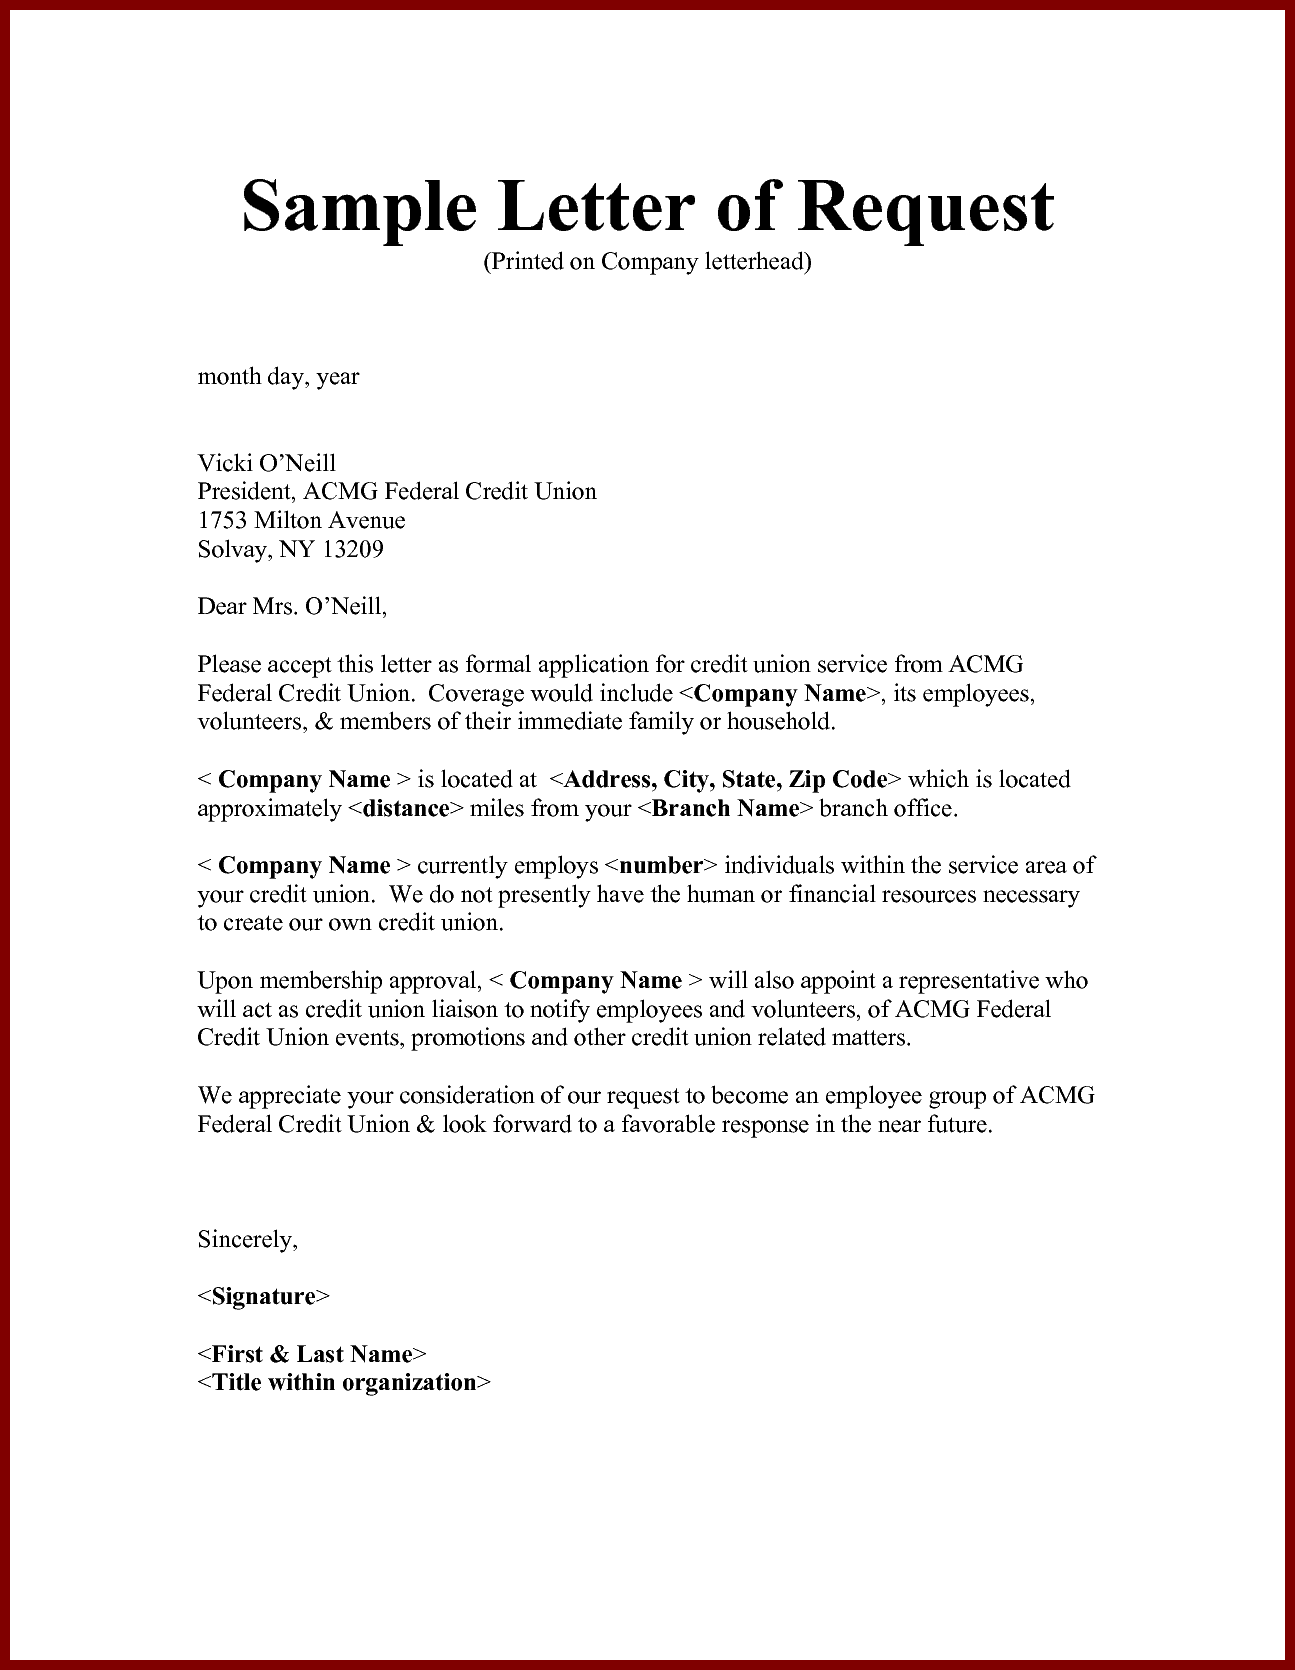 Application letter format for maternity leave college principal application letter format for maternity leave college principal altavistaventures Gallery